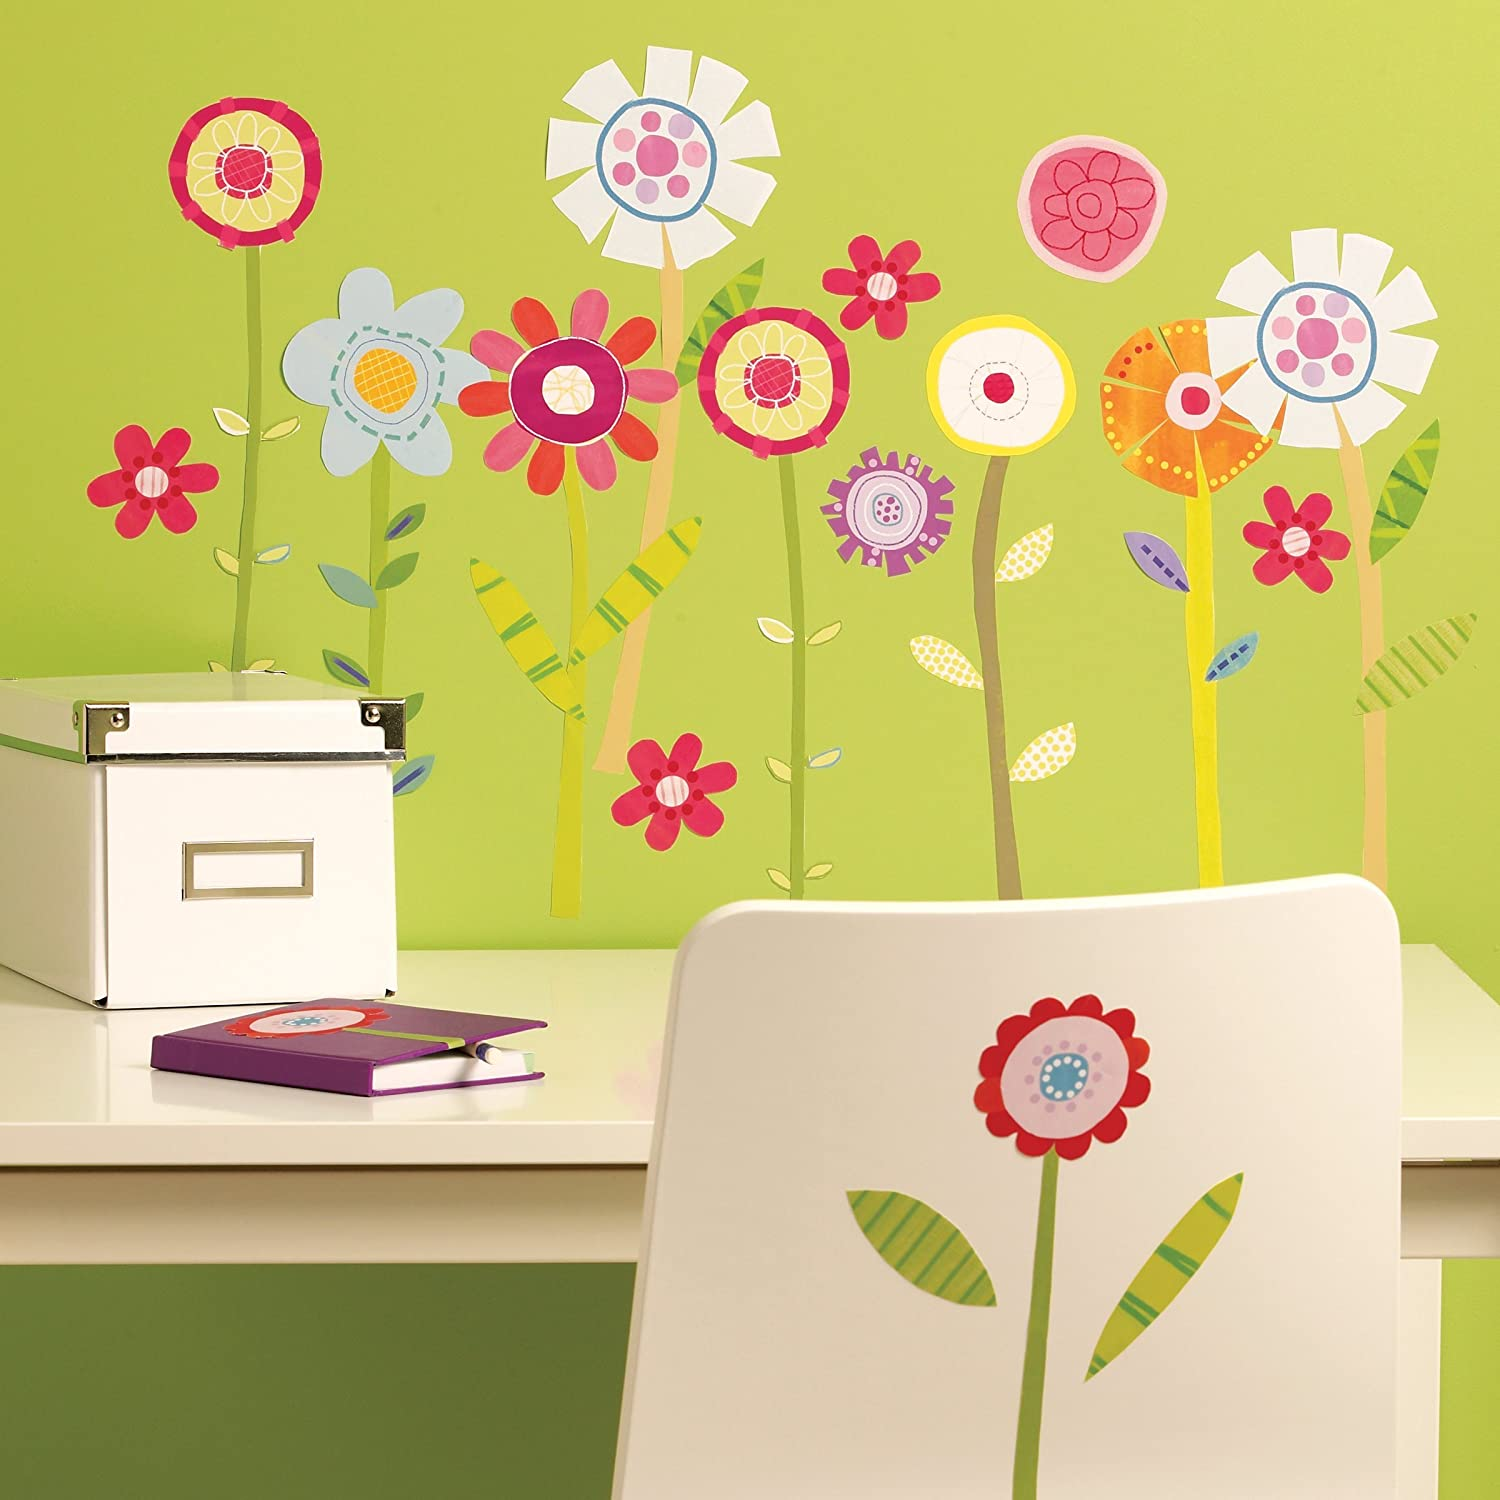 Amazon.com: Wallies Wall Decals, Green Garden Flower Wall Stickers ...